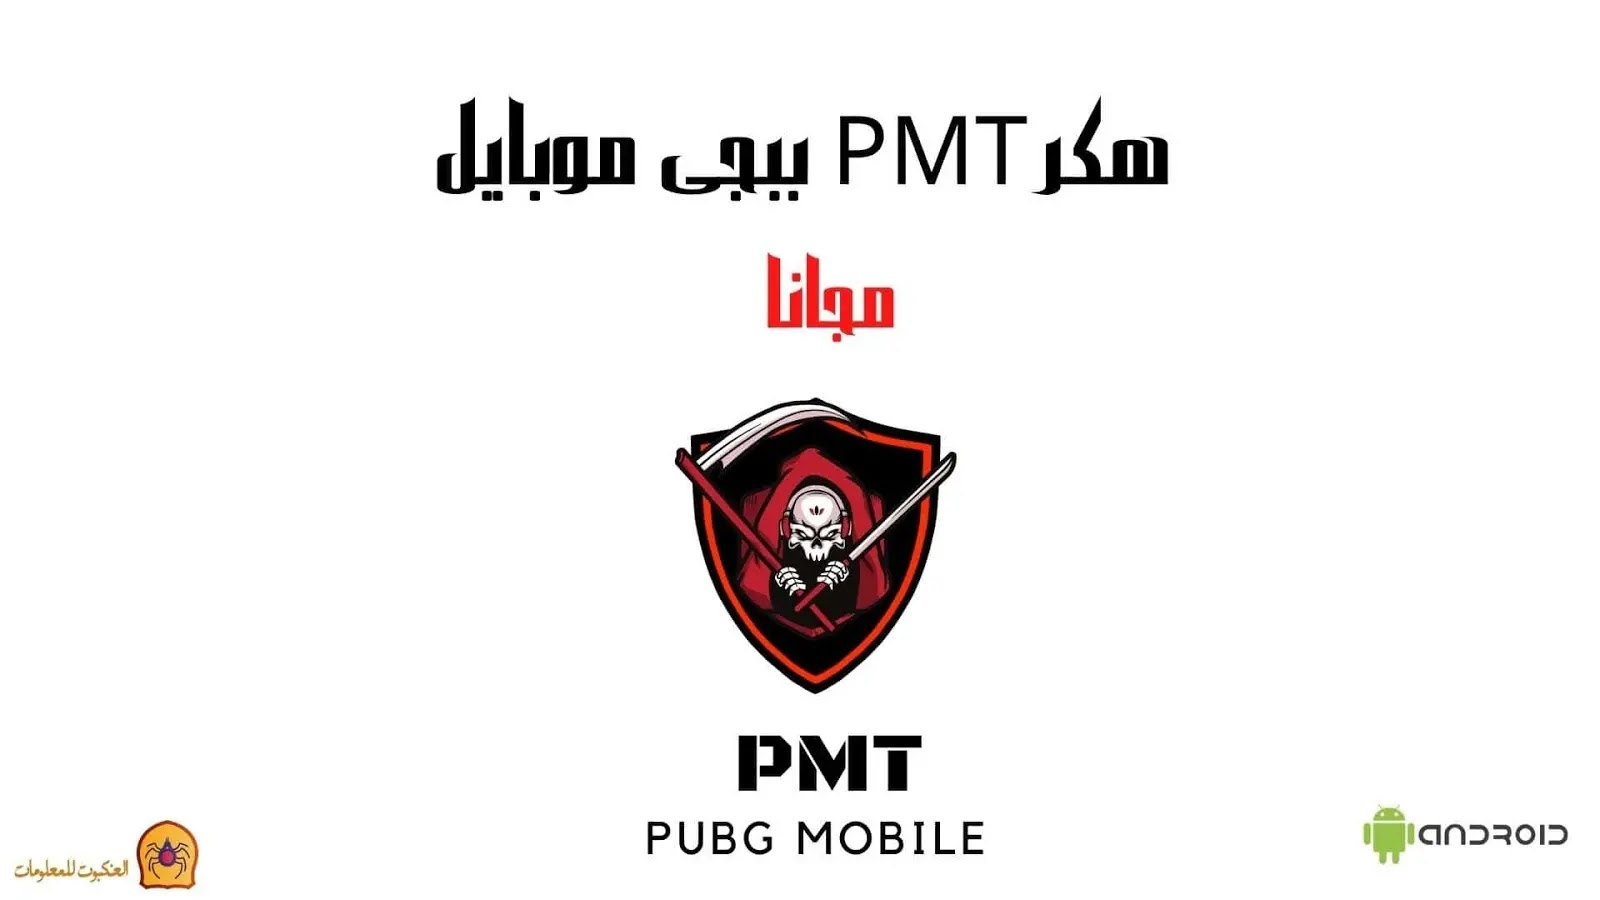 Download the most powerful PUBG mobile hacker PUBG 2020